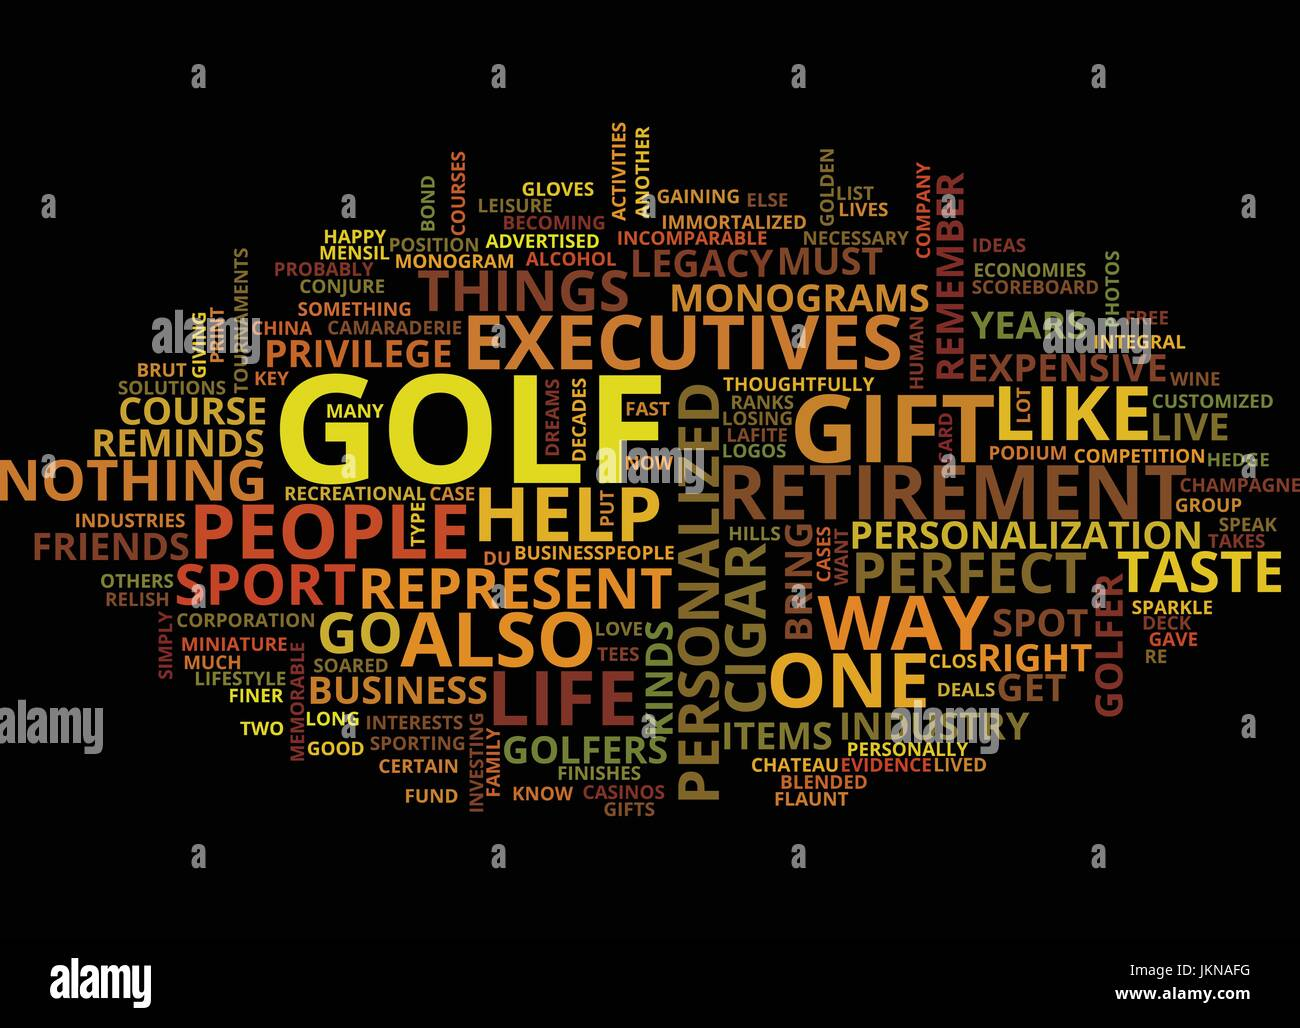 LET THEM REMEMBER THEIR LEGACY RETIREMENT GIFT IDEAS FOR EXECUTIVES Text Background Word Cloud Concept